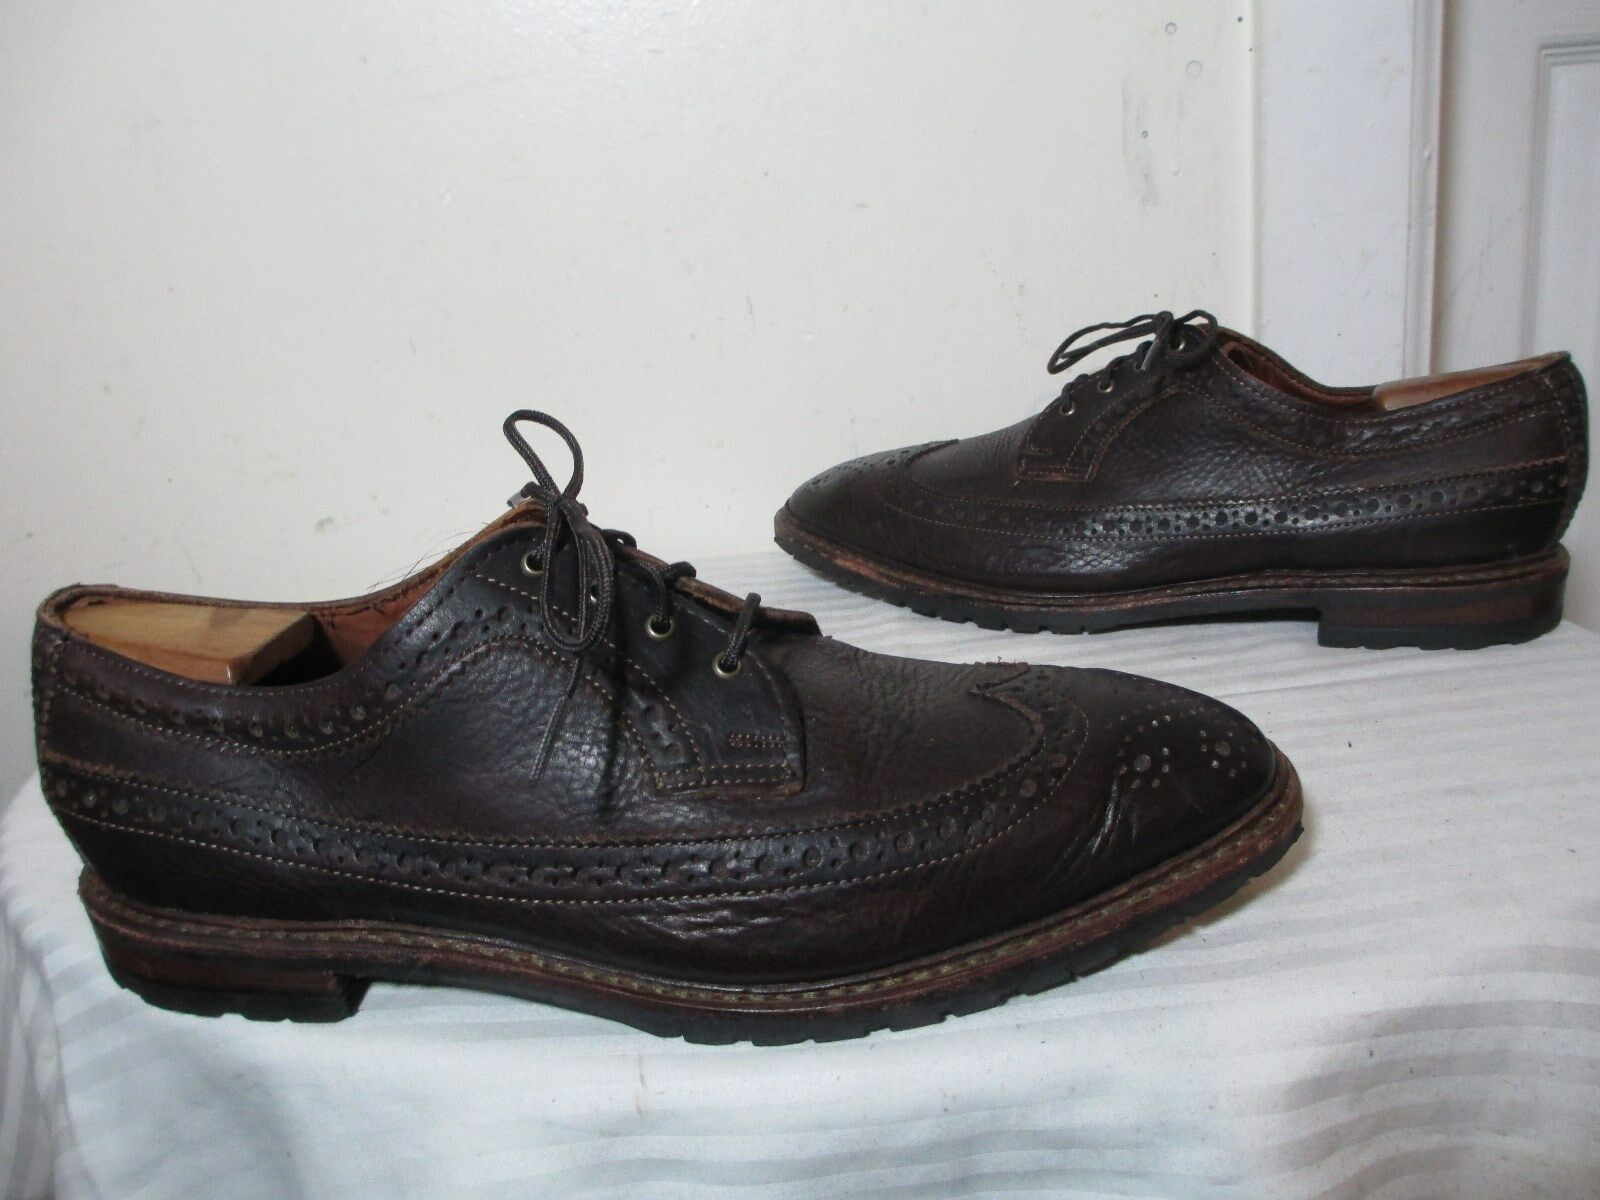 BROOKS BrougeHERS DARK marron PEBBLE LEATHER WINGTIP OXFORDS SZ 11 D MADE IN USA